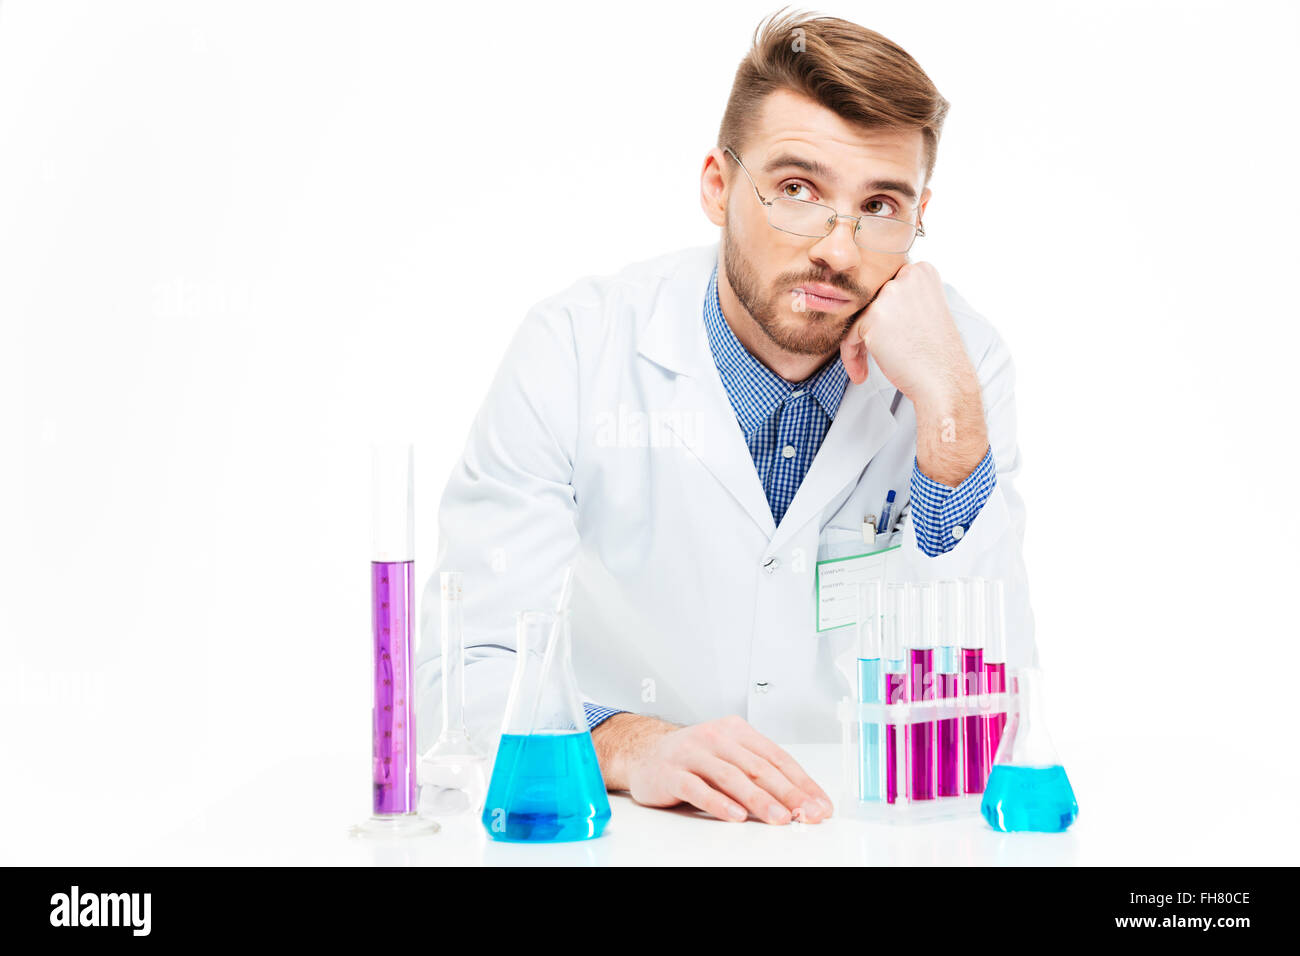 Scientist pouring chemicals isolated on a white background - Stock Image